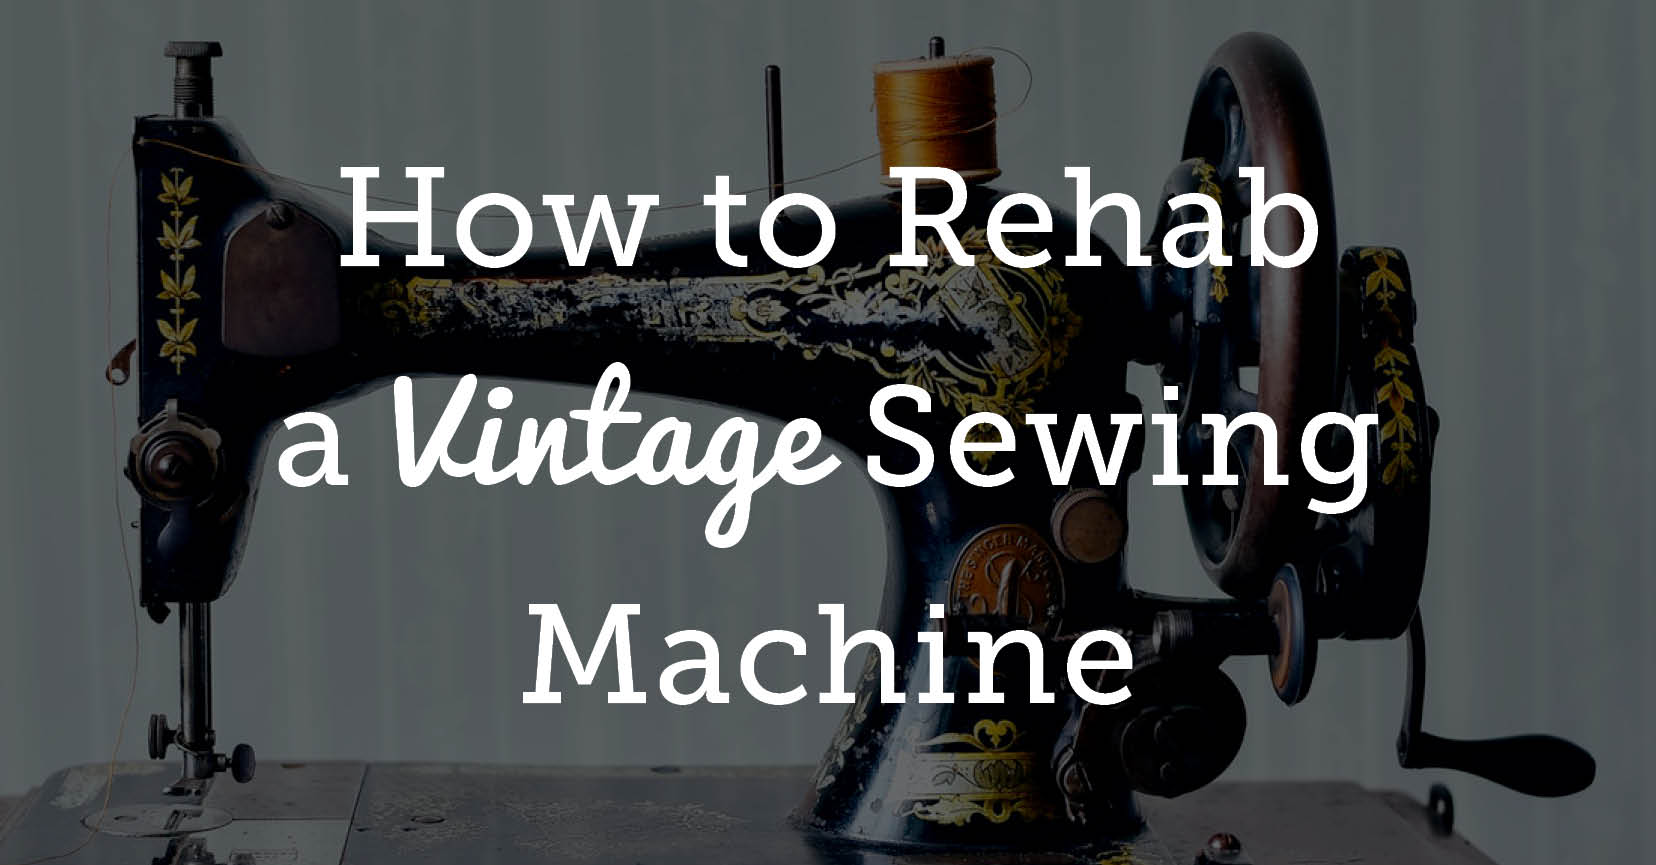 rehab-vintage-sewing-machines